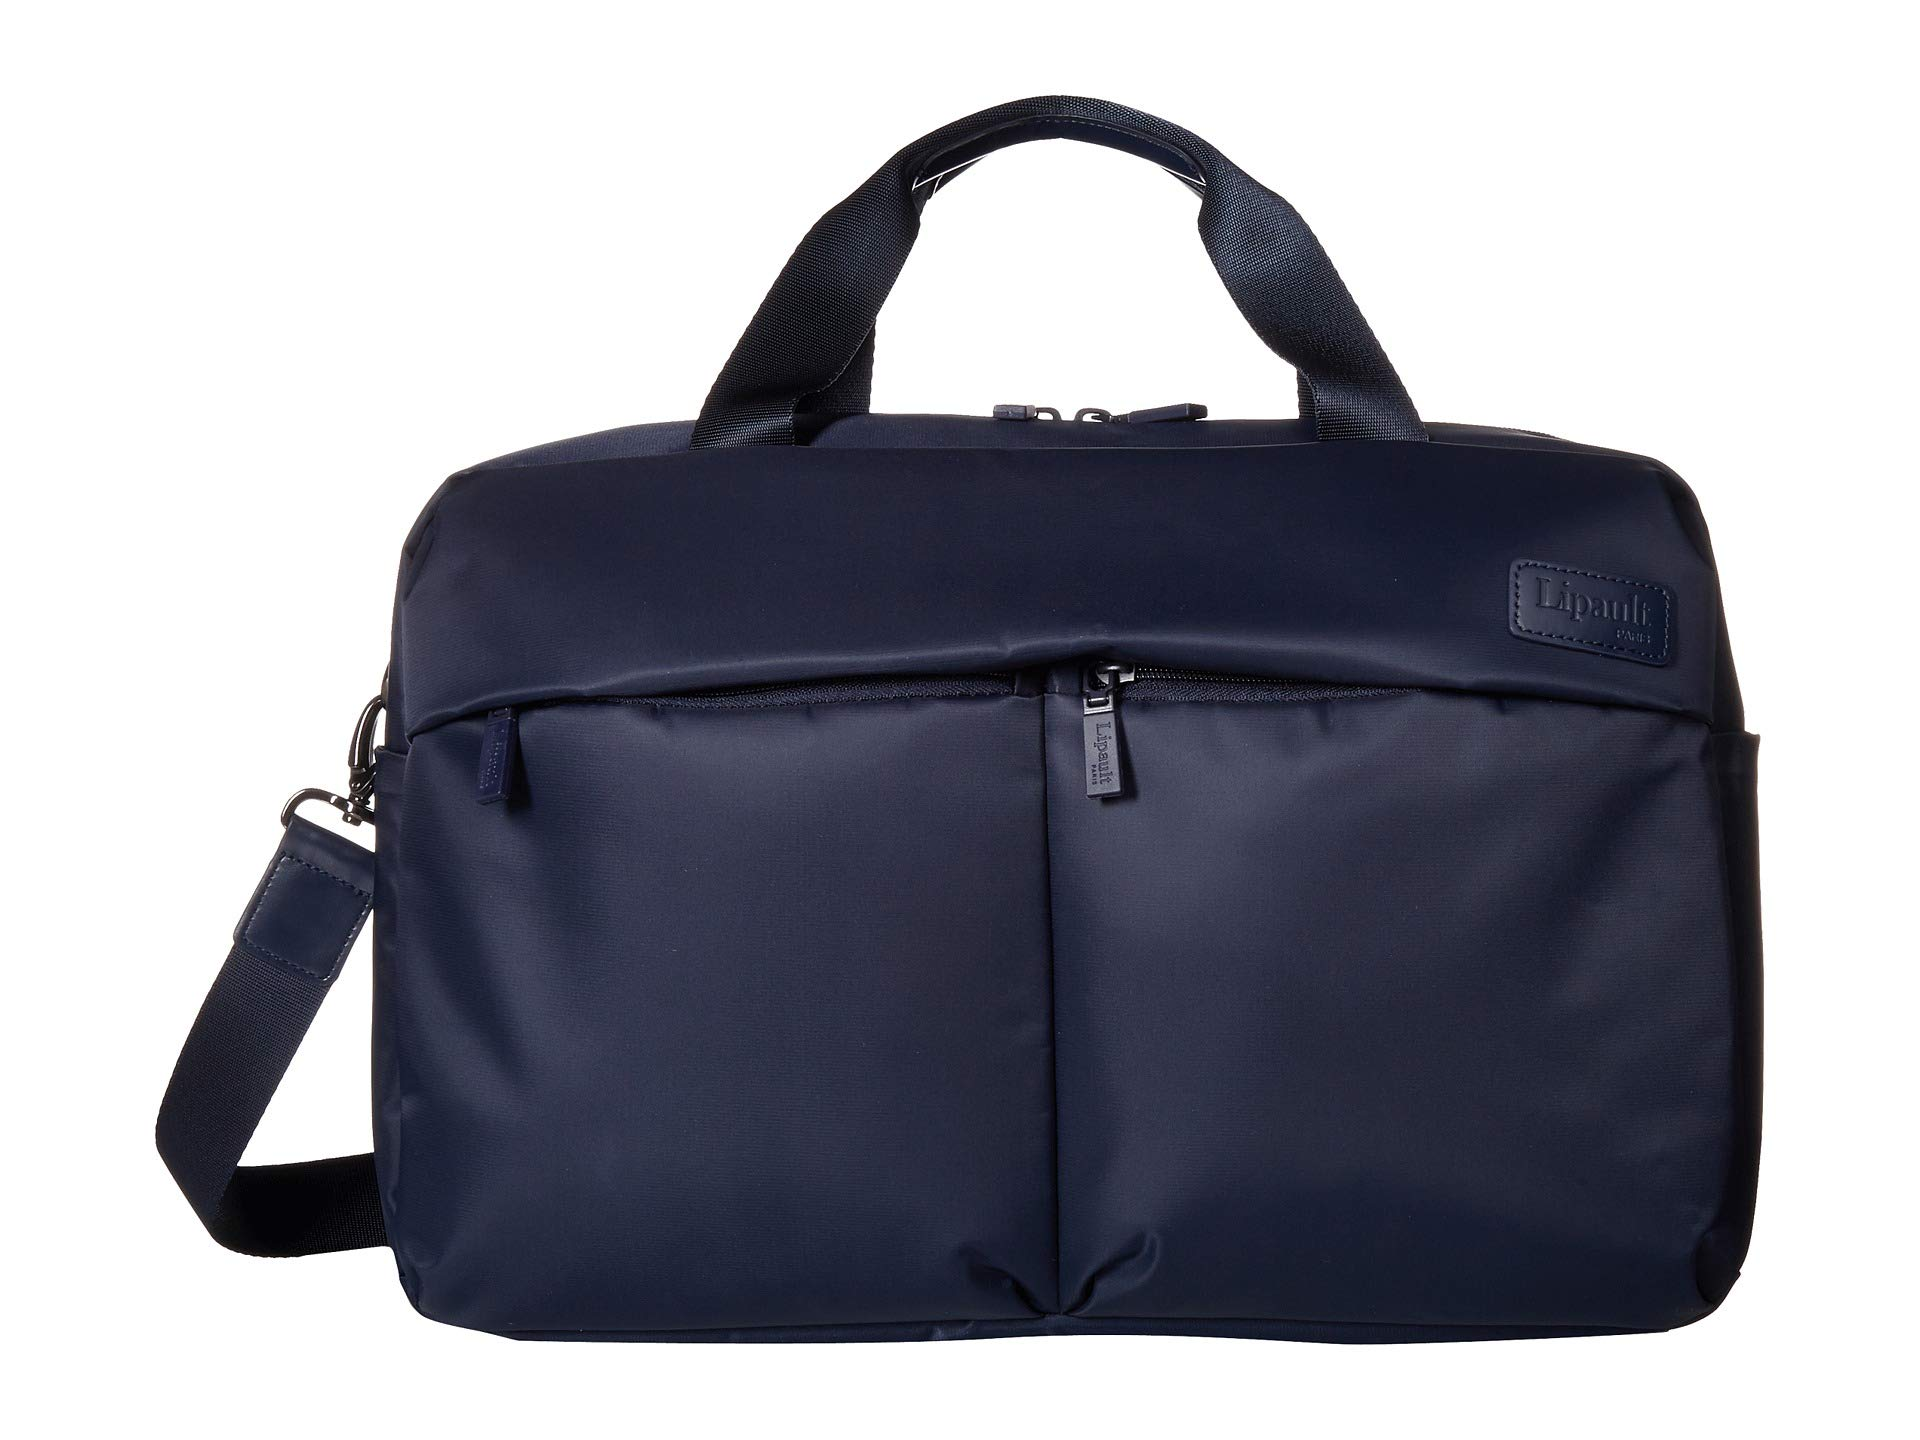 24 Plume Hour Navy Lipault Bag City Paris UqWHHTg